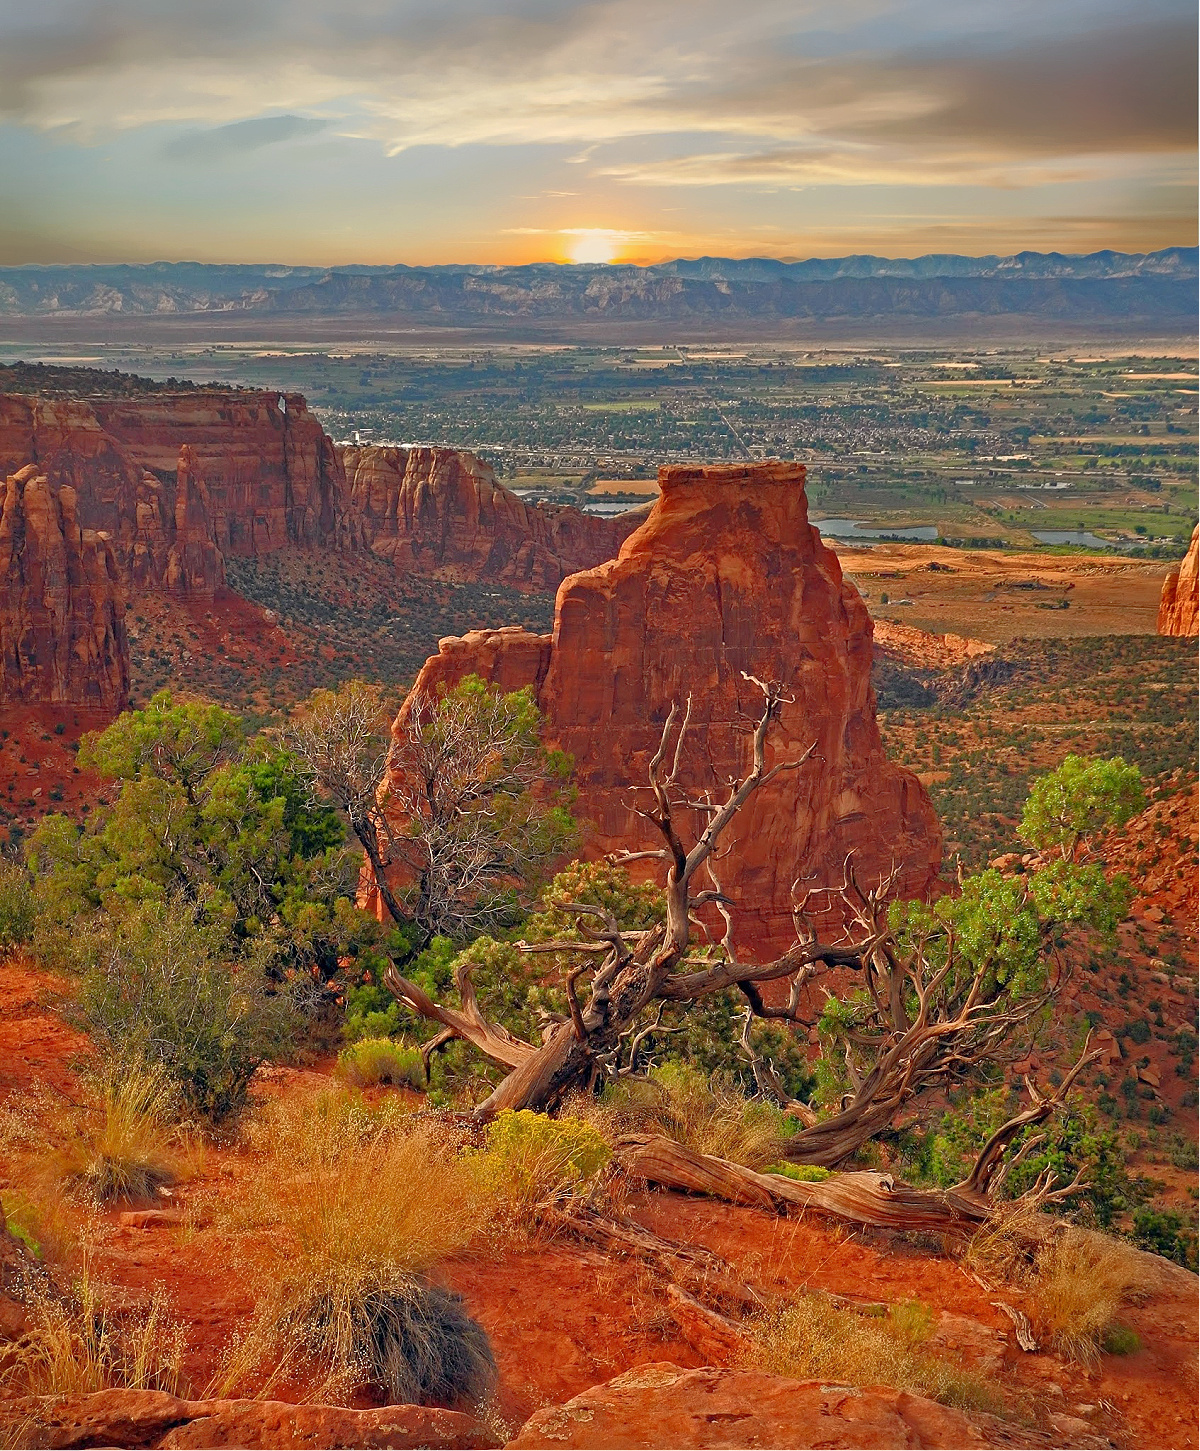 Wait for the sunset to take in even more breathtaking views of Colorado National Monument.